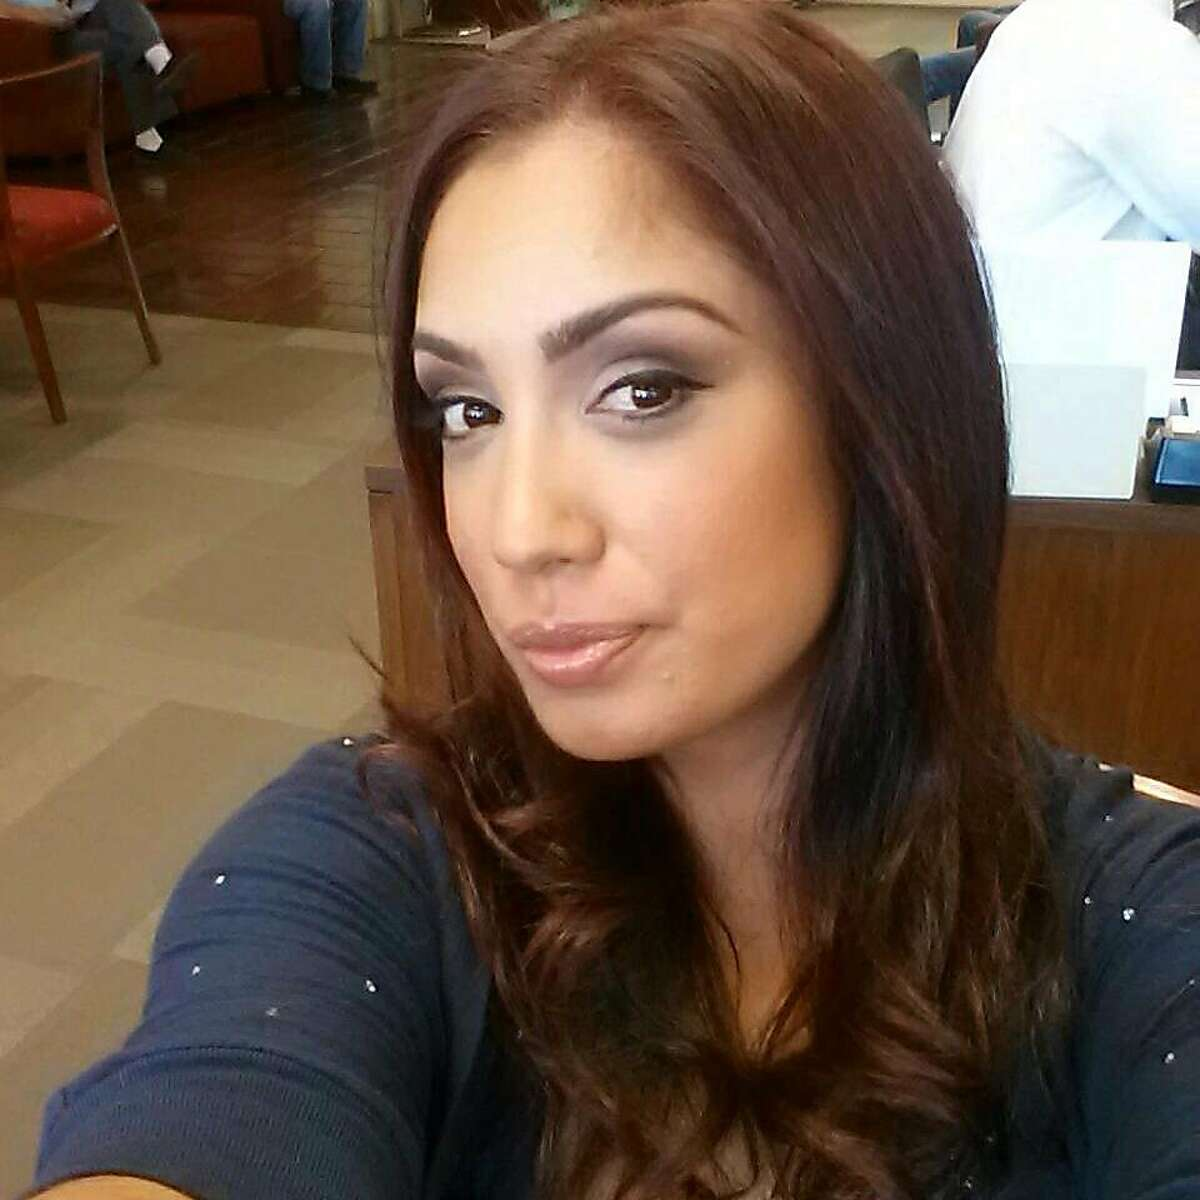 Vanessa Palma, 34, of South San Francisco, was finally trying to leave a violent romantic relationship, family memebrs said, when she was murdered on Wednesday in Mission Terrace.